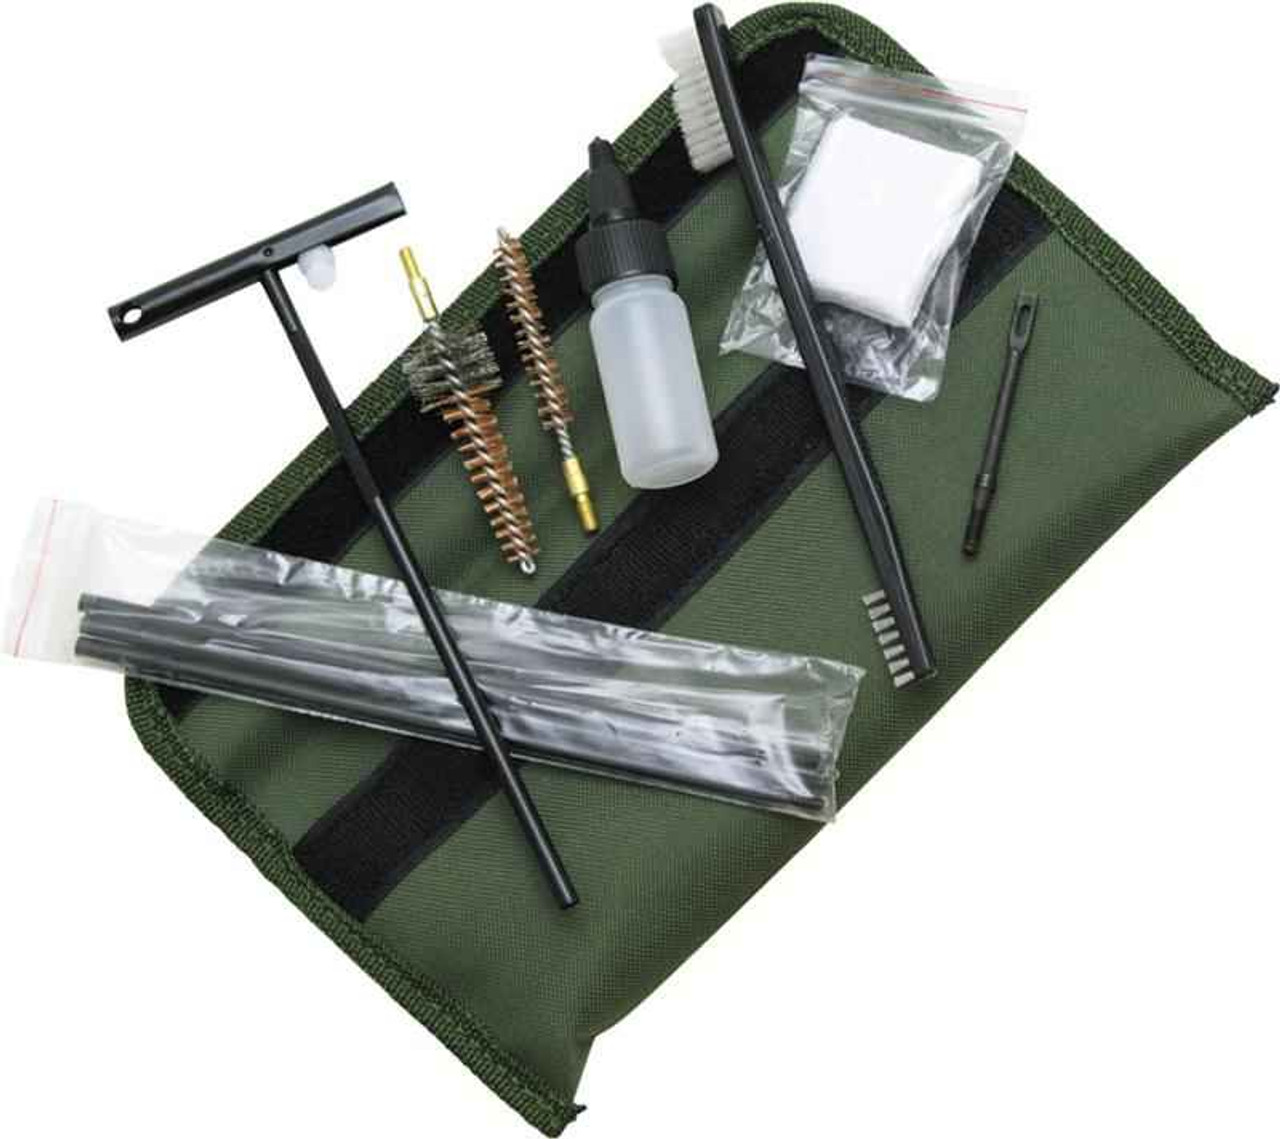 ABKT AB0035 Tac 5.56mm Gun Cleaning Kit, Olive green pouch